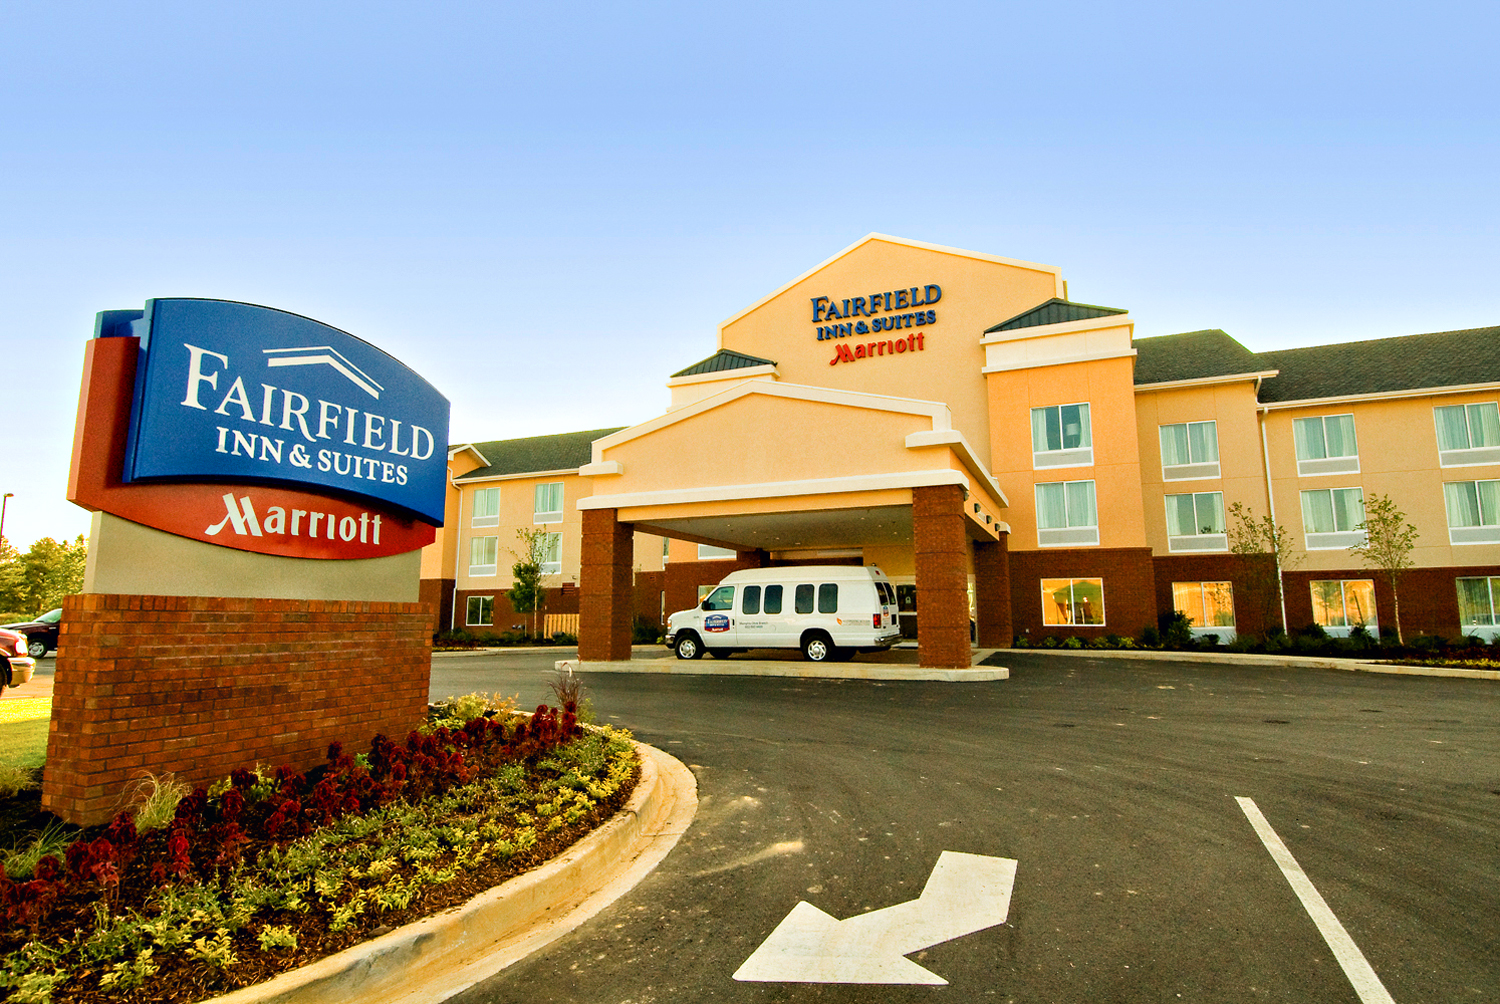 Fairfield-Inn-in-Memphis,-Tn---Hospitality-Hotel-Design-Construction-2.jpg